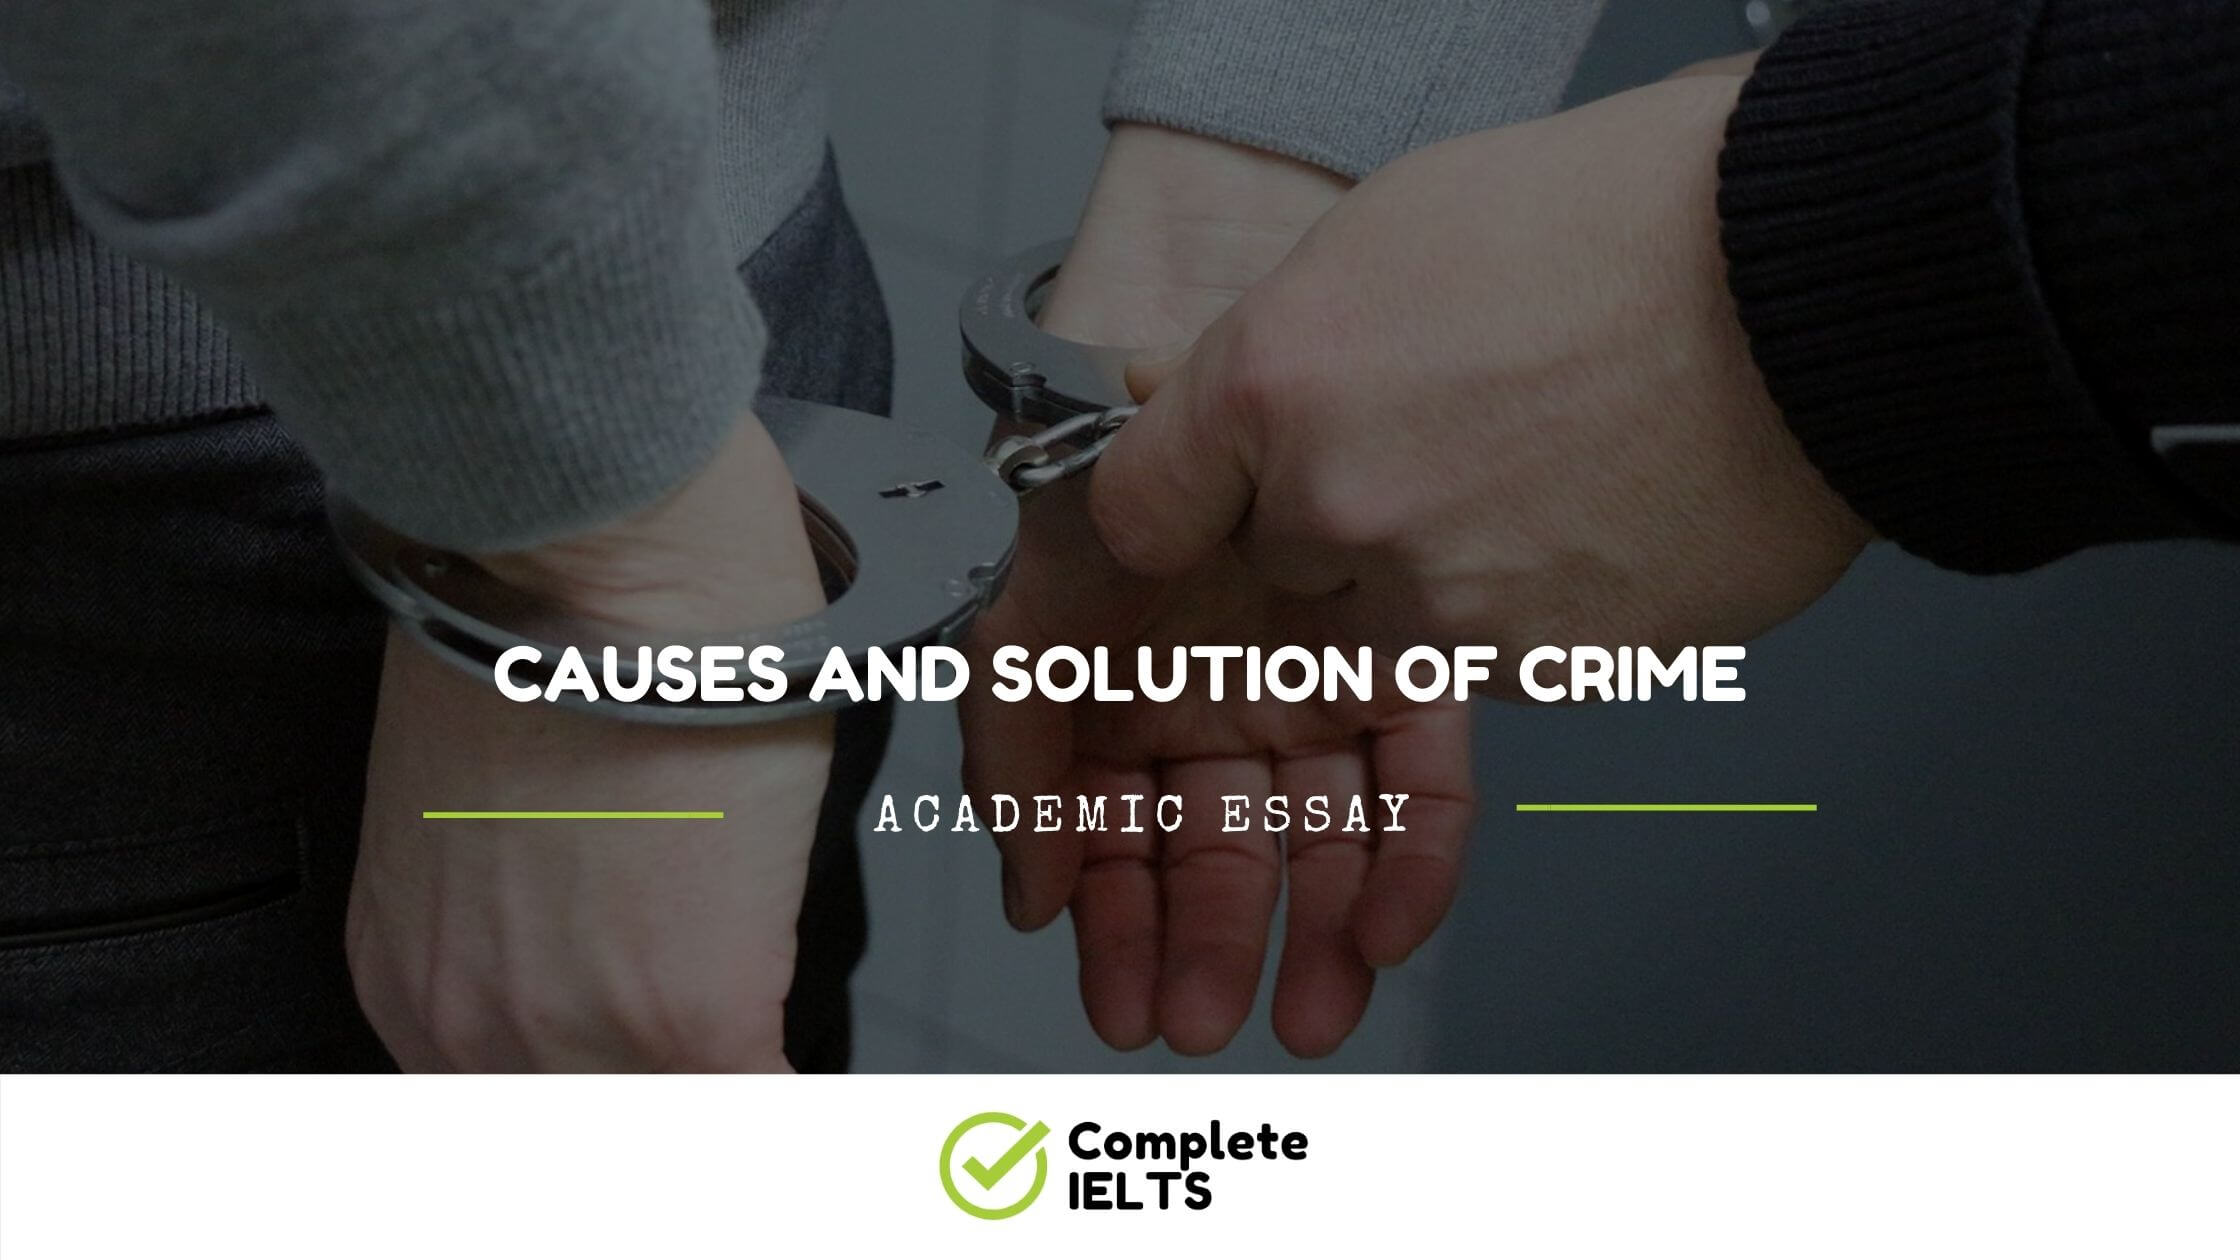 Causes and Solution of Crime Essay